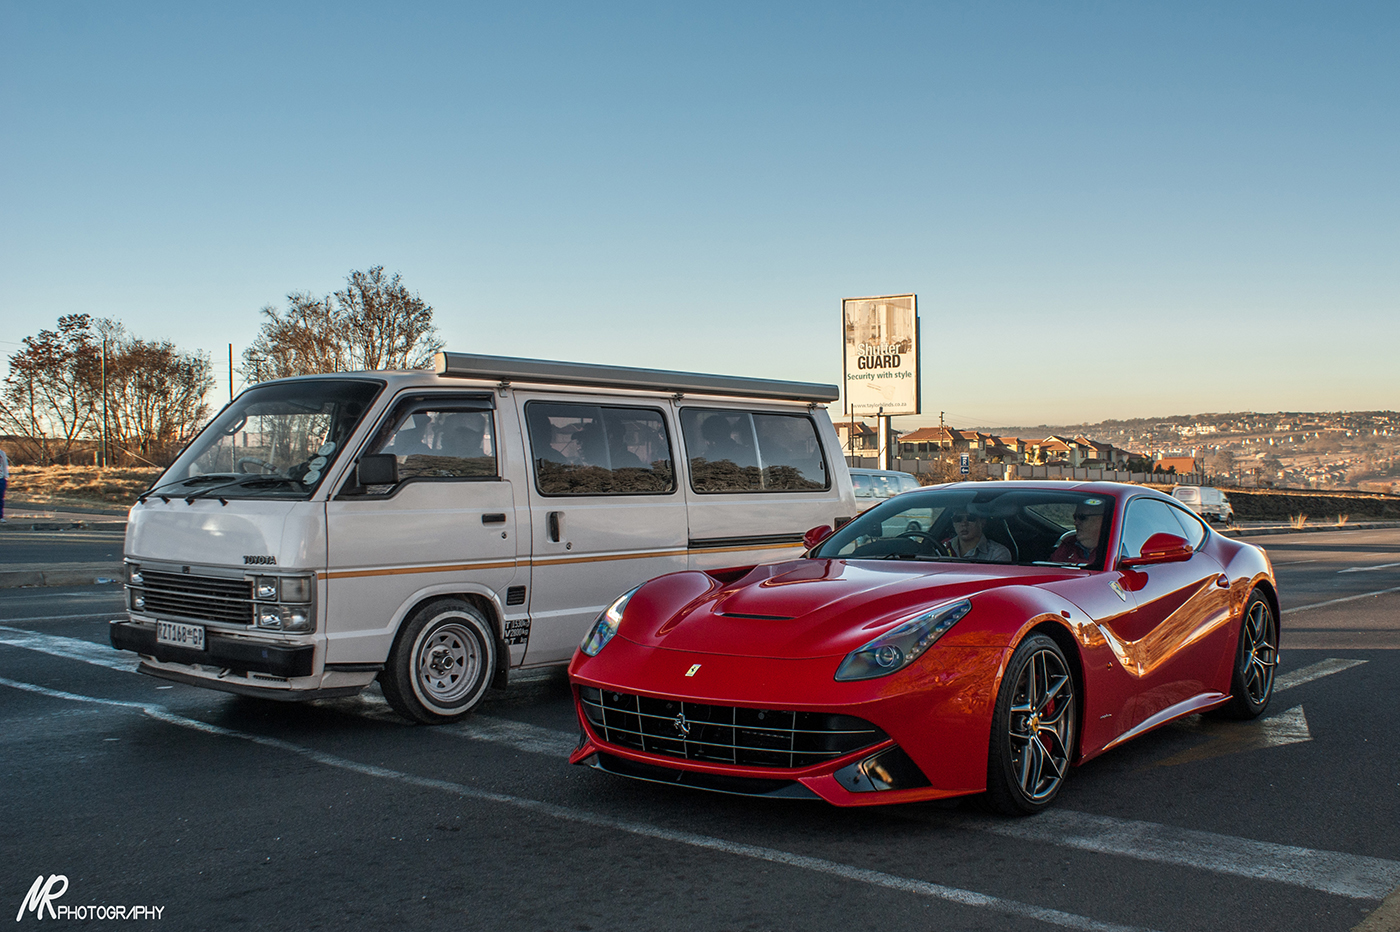 These cars were spotted in South Africa last week